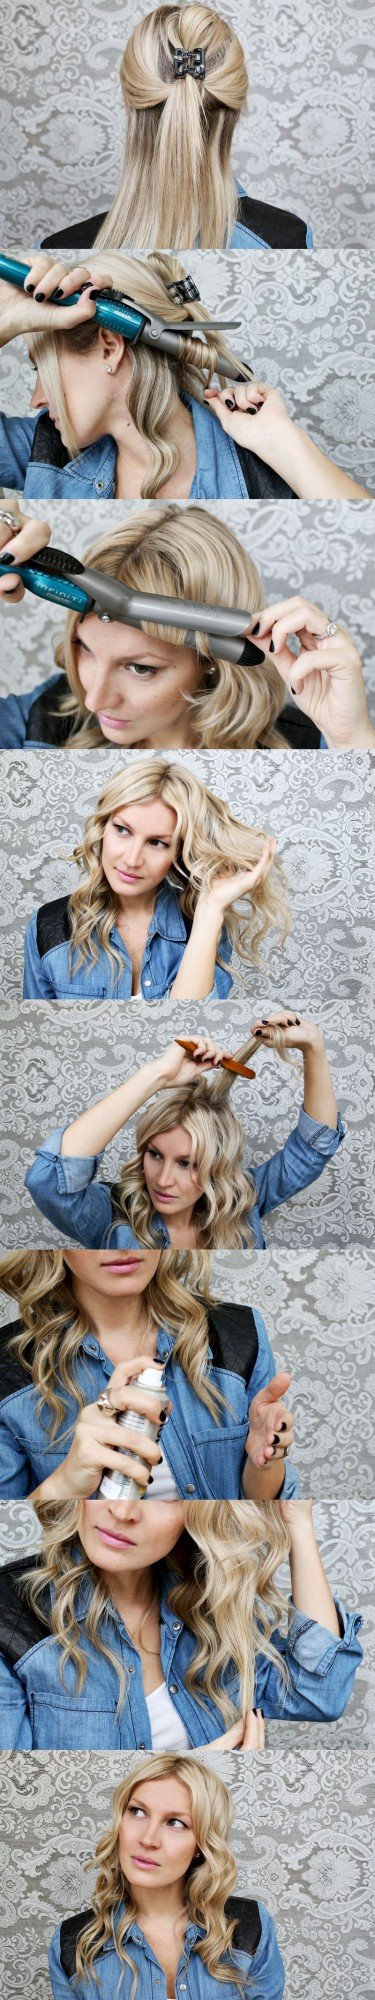 22 Gorgeous Hairstyle Ideas and Tutorials for New Year's Eve (2)